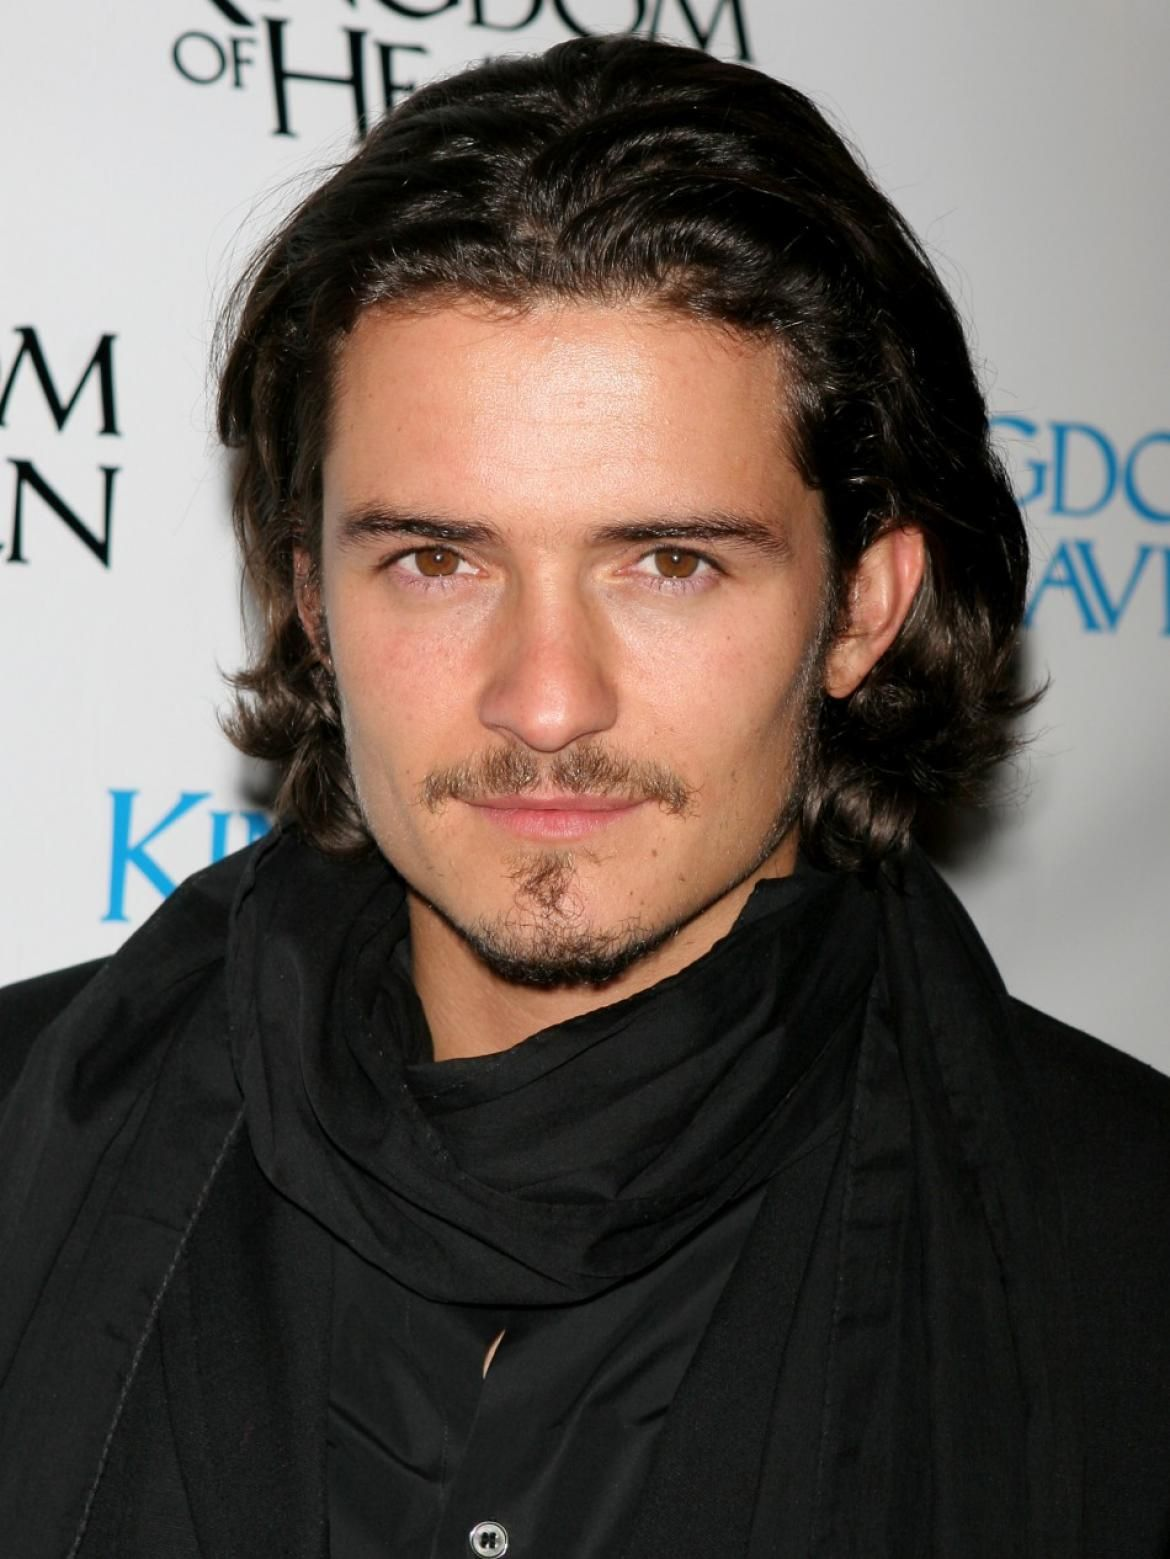 What Happened To Orlando Bloom News And Updates With Images